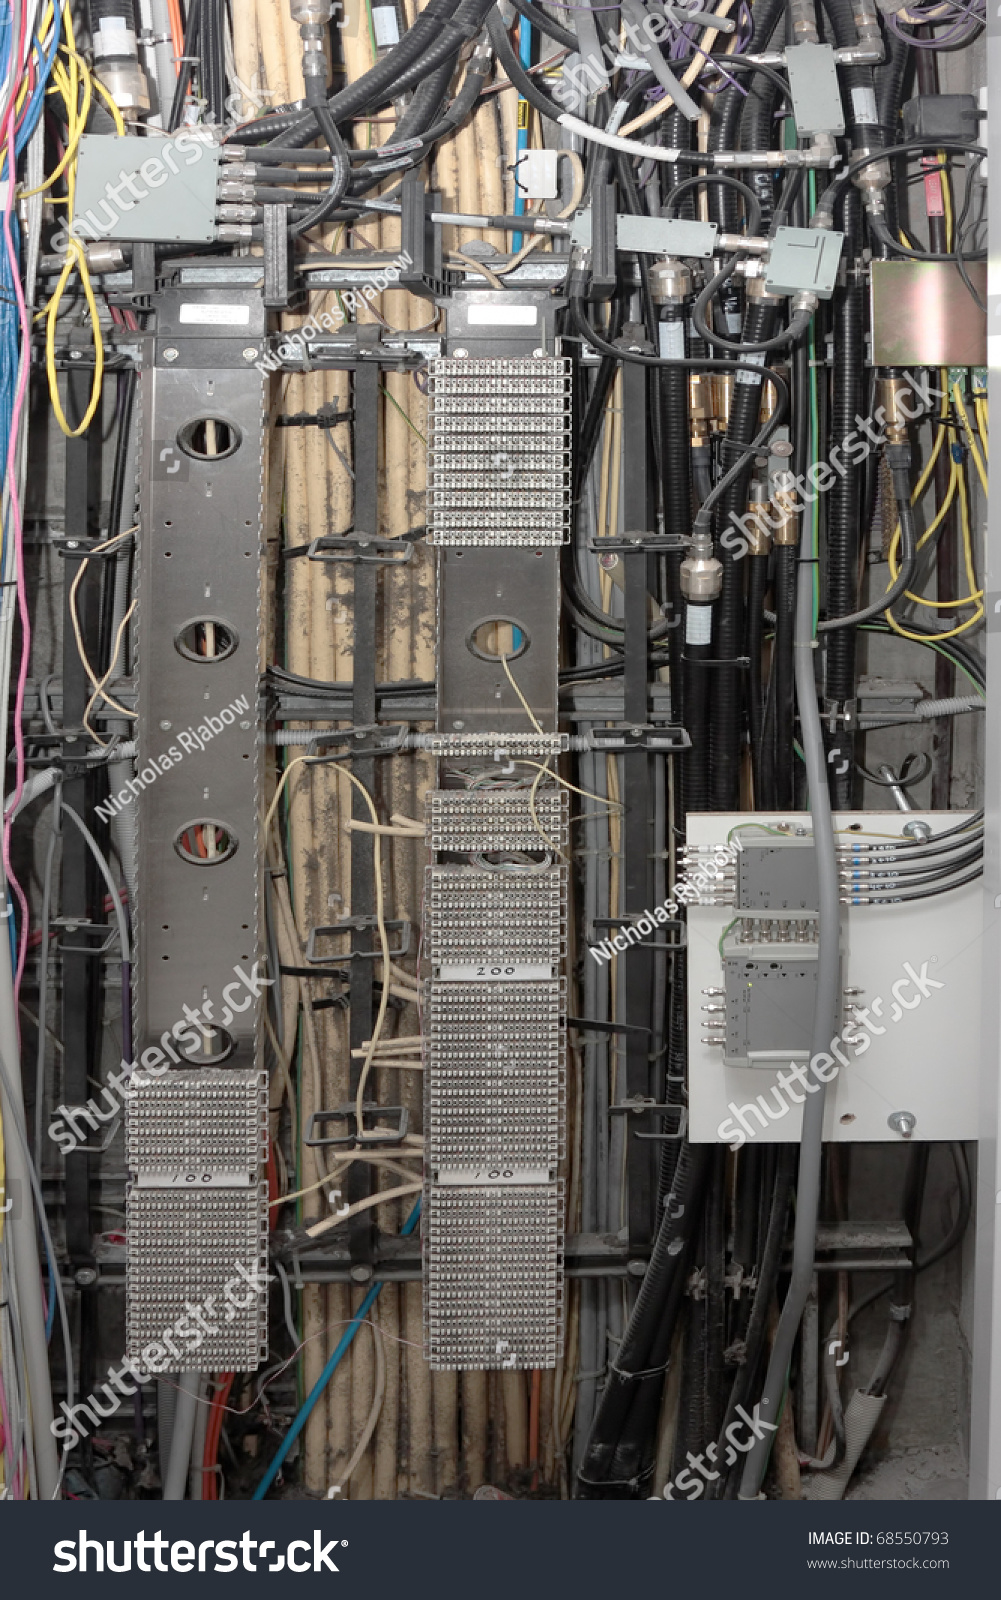 hight resolution of a telecommunications cabinet and wiring